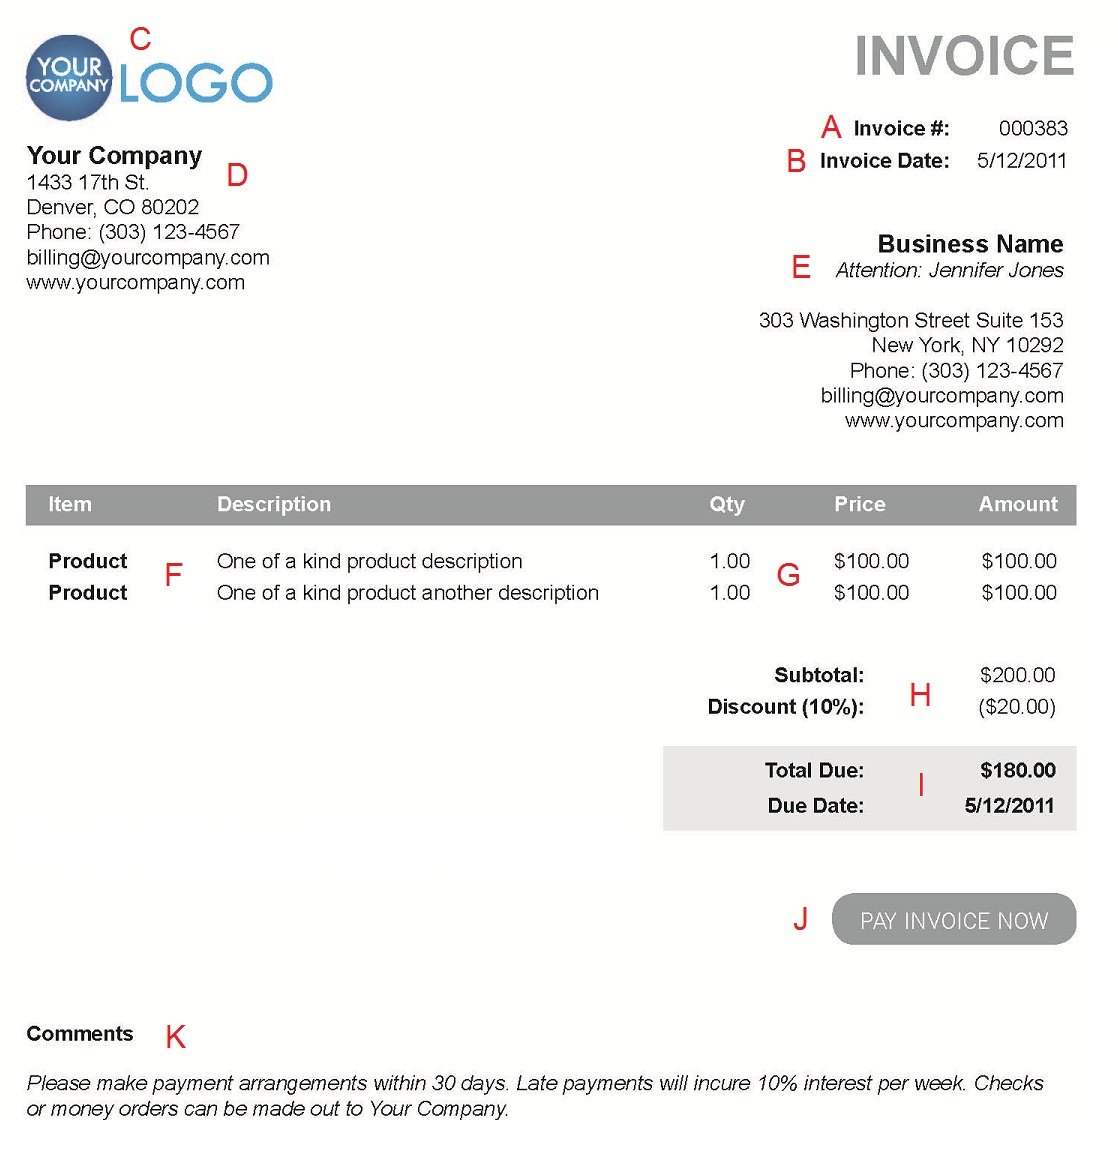 Centralasianshepherdus  Winsome The  Different Sections Of An Electronic Payment Invoice With Magnificent A  With Beauteous Generic Receipt Template Also American Airline Receipt In Addition Donation Receipts And Lowes Return Without Receipt As Well As Receipt Of Payment Letter Additionally Domestic Production Gross Receipts From Paysimplecom With Centralasianshepherdus  Magnificent The  Different Sections Of An Electronic Payment Invoice With Beauteous A  And Winsome Generic Receipt Template Also American Airline Receipt In Addition Donation Receipts From Paysimplecom